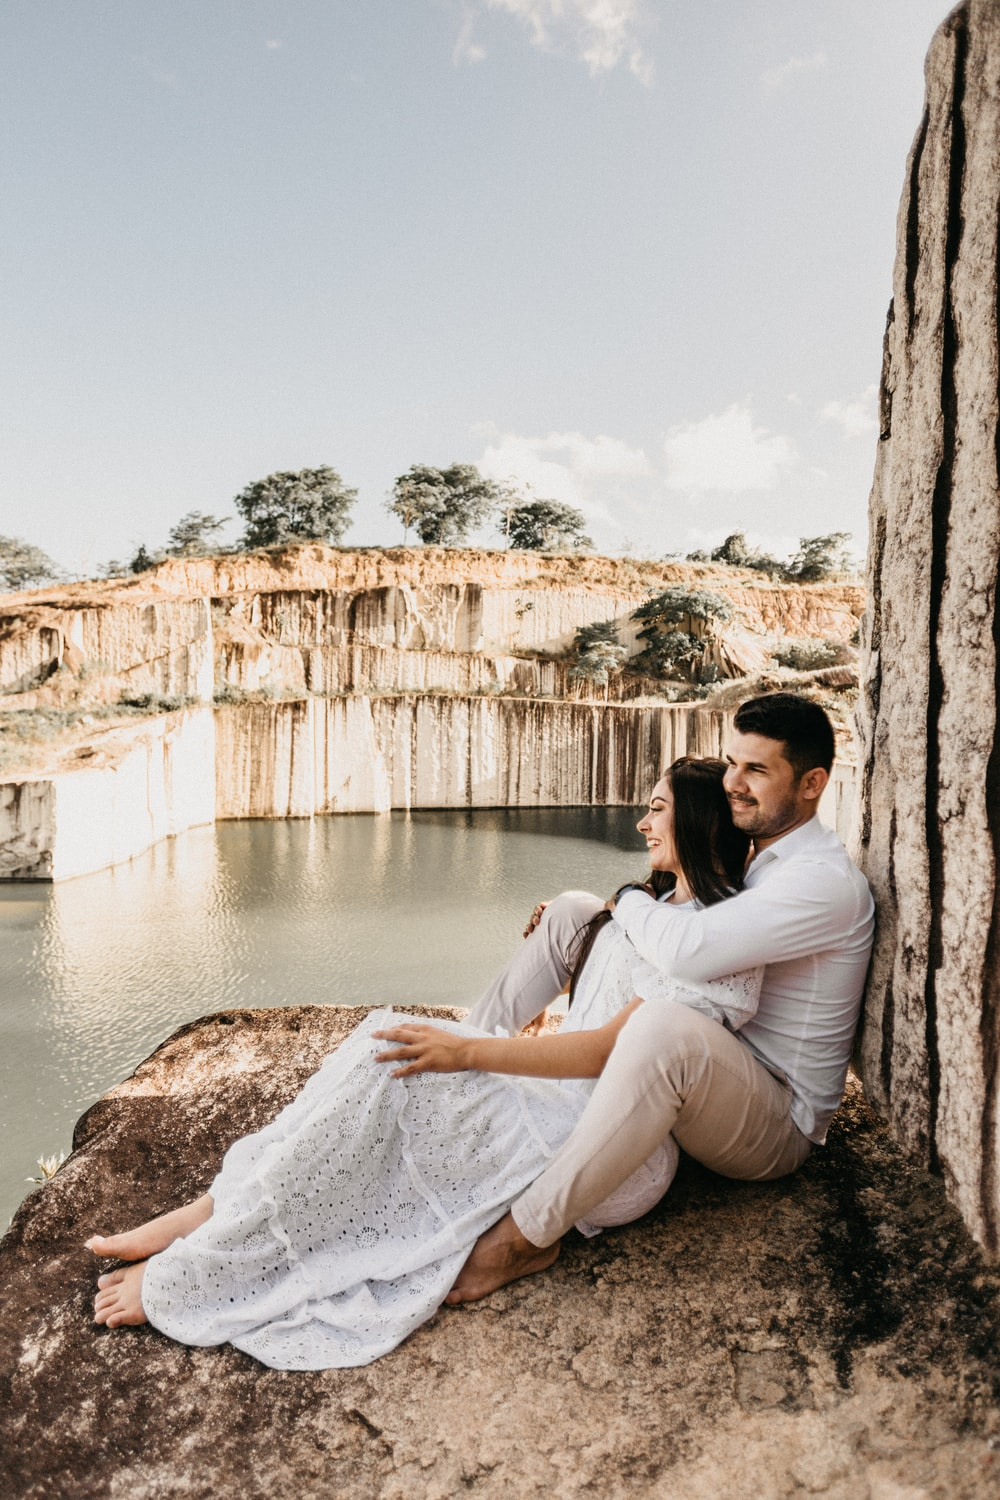 smiling man and woman sitting on rock near body of water during daytime